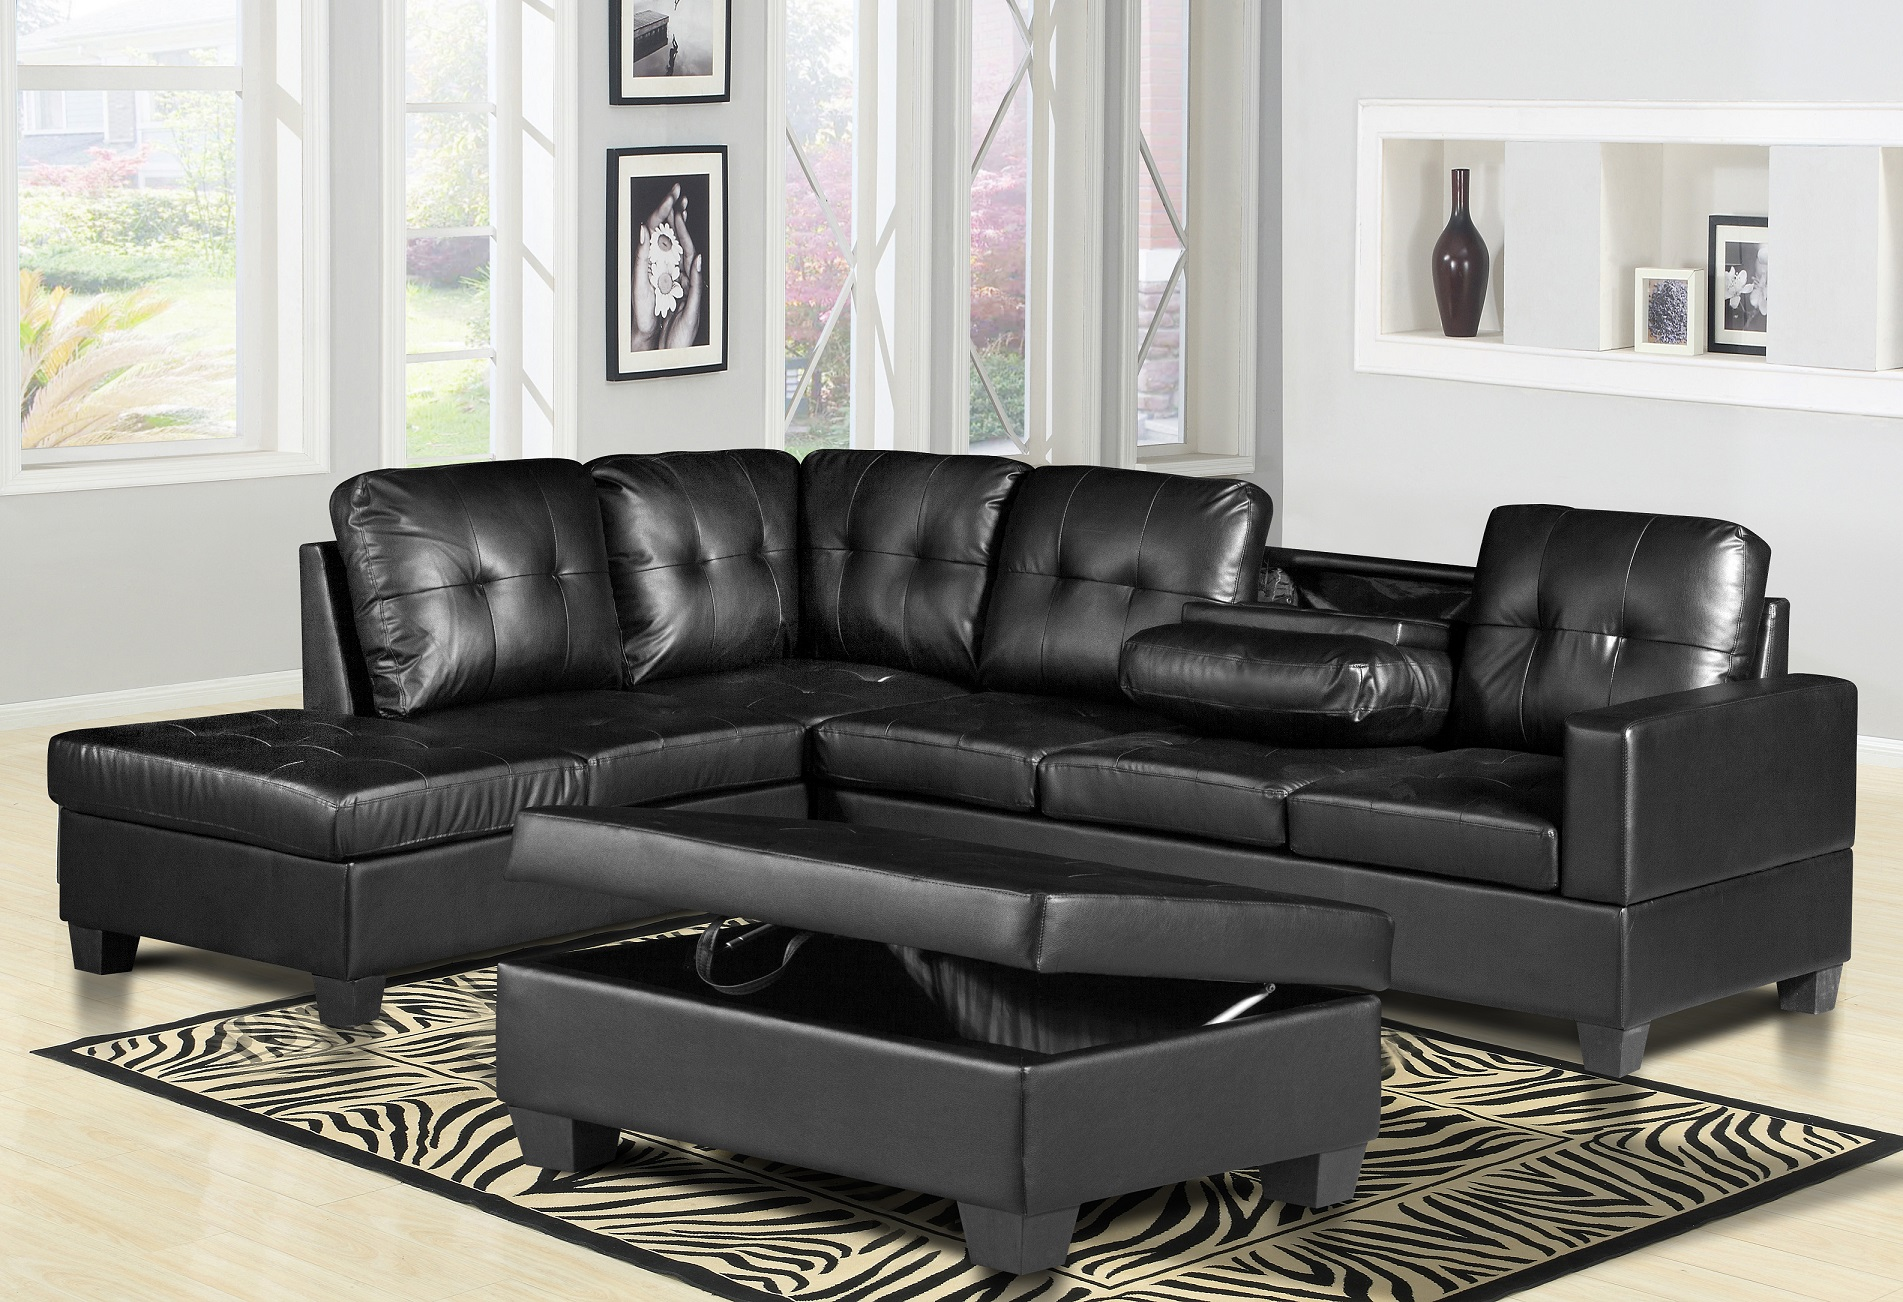 Black 3PC Leather Sectional Sofa Set With Storage Ottoman